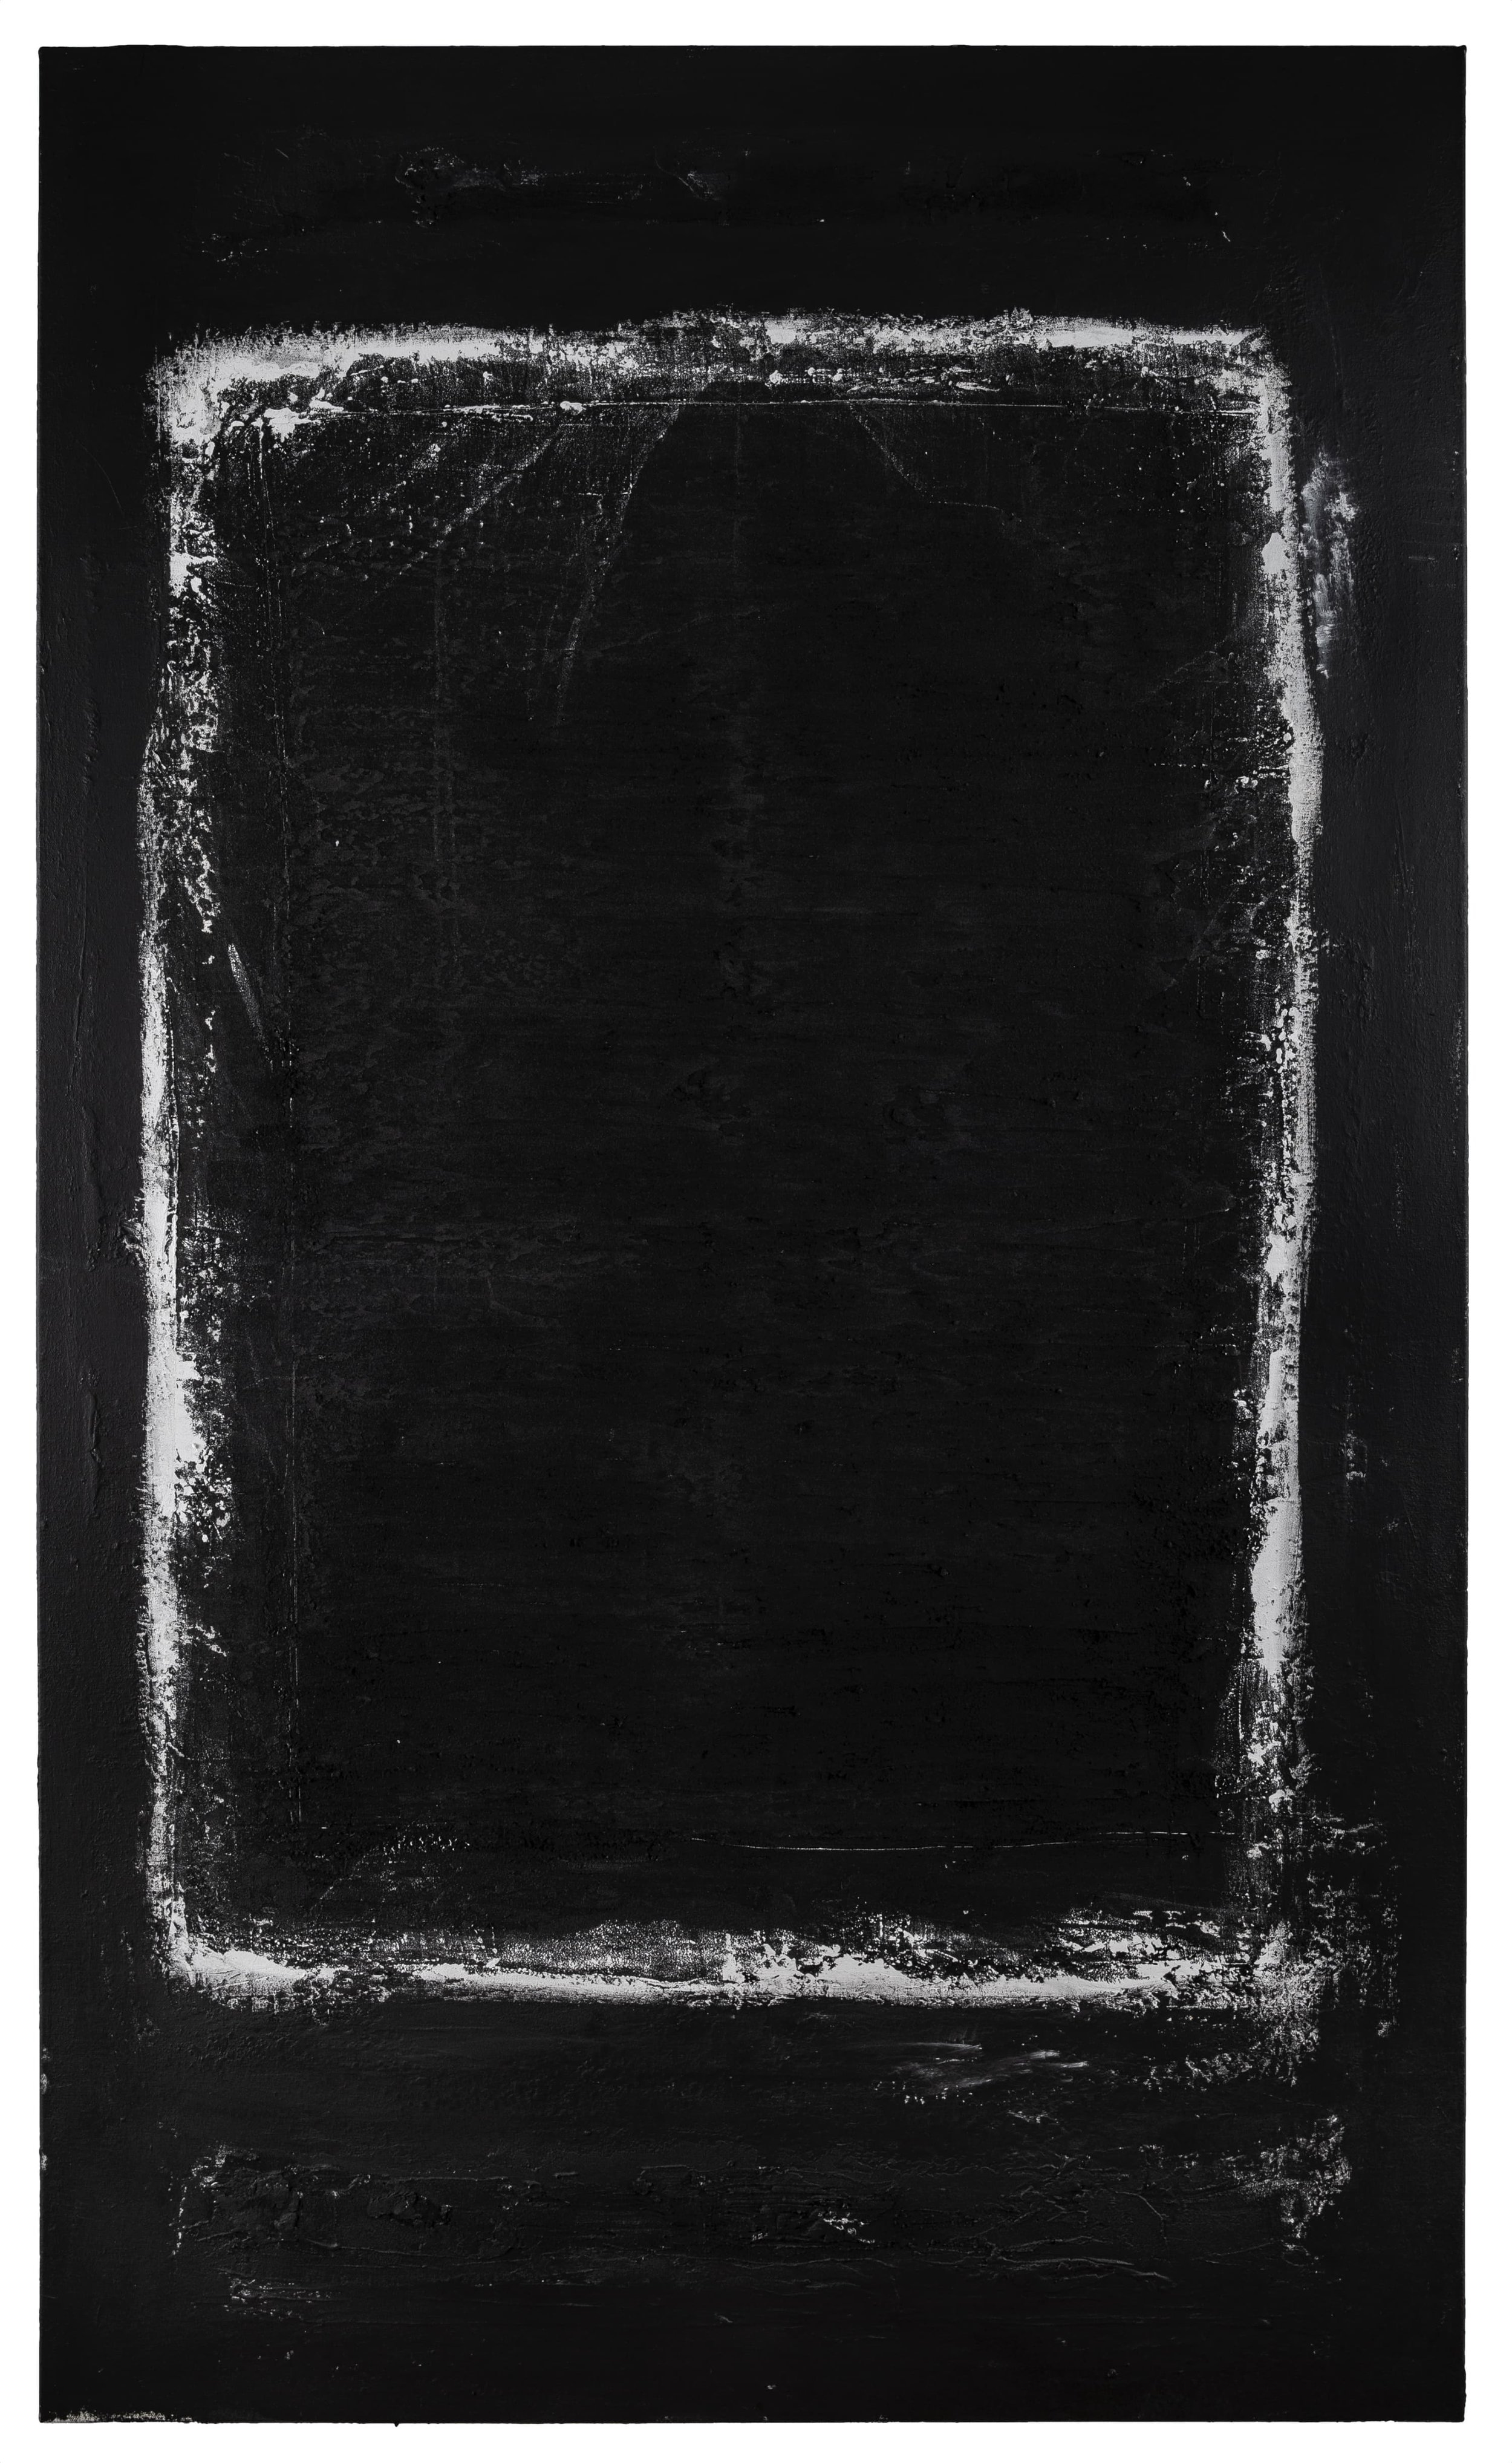 Occulted , 2019 Acrylic, pumice, black gesso on canvas 60 × 38 in (152.4 × 96.52 cm)